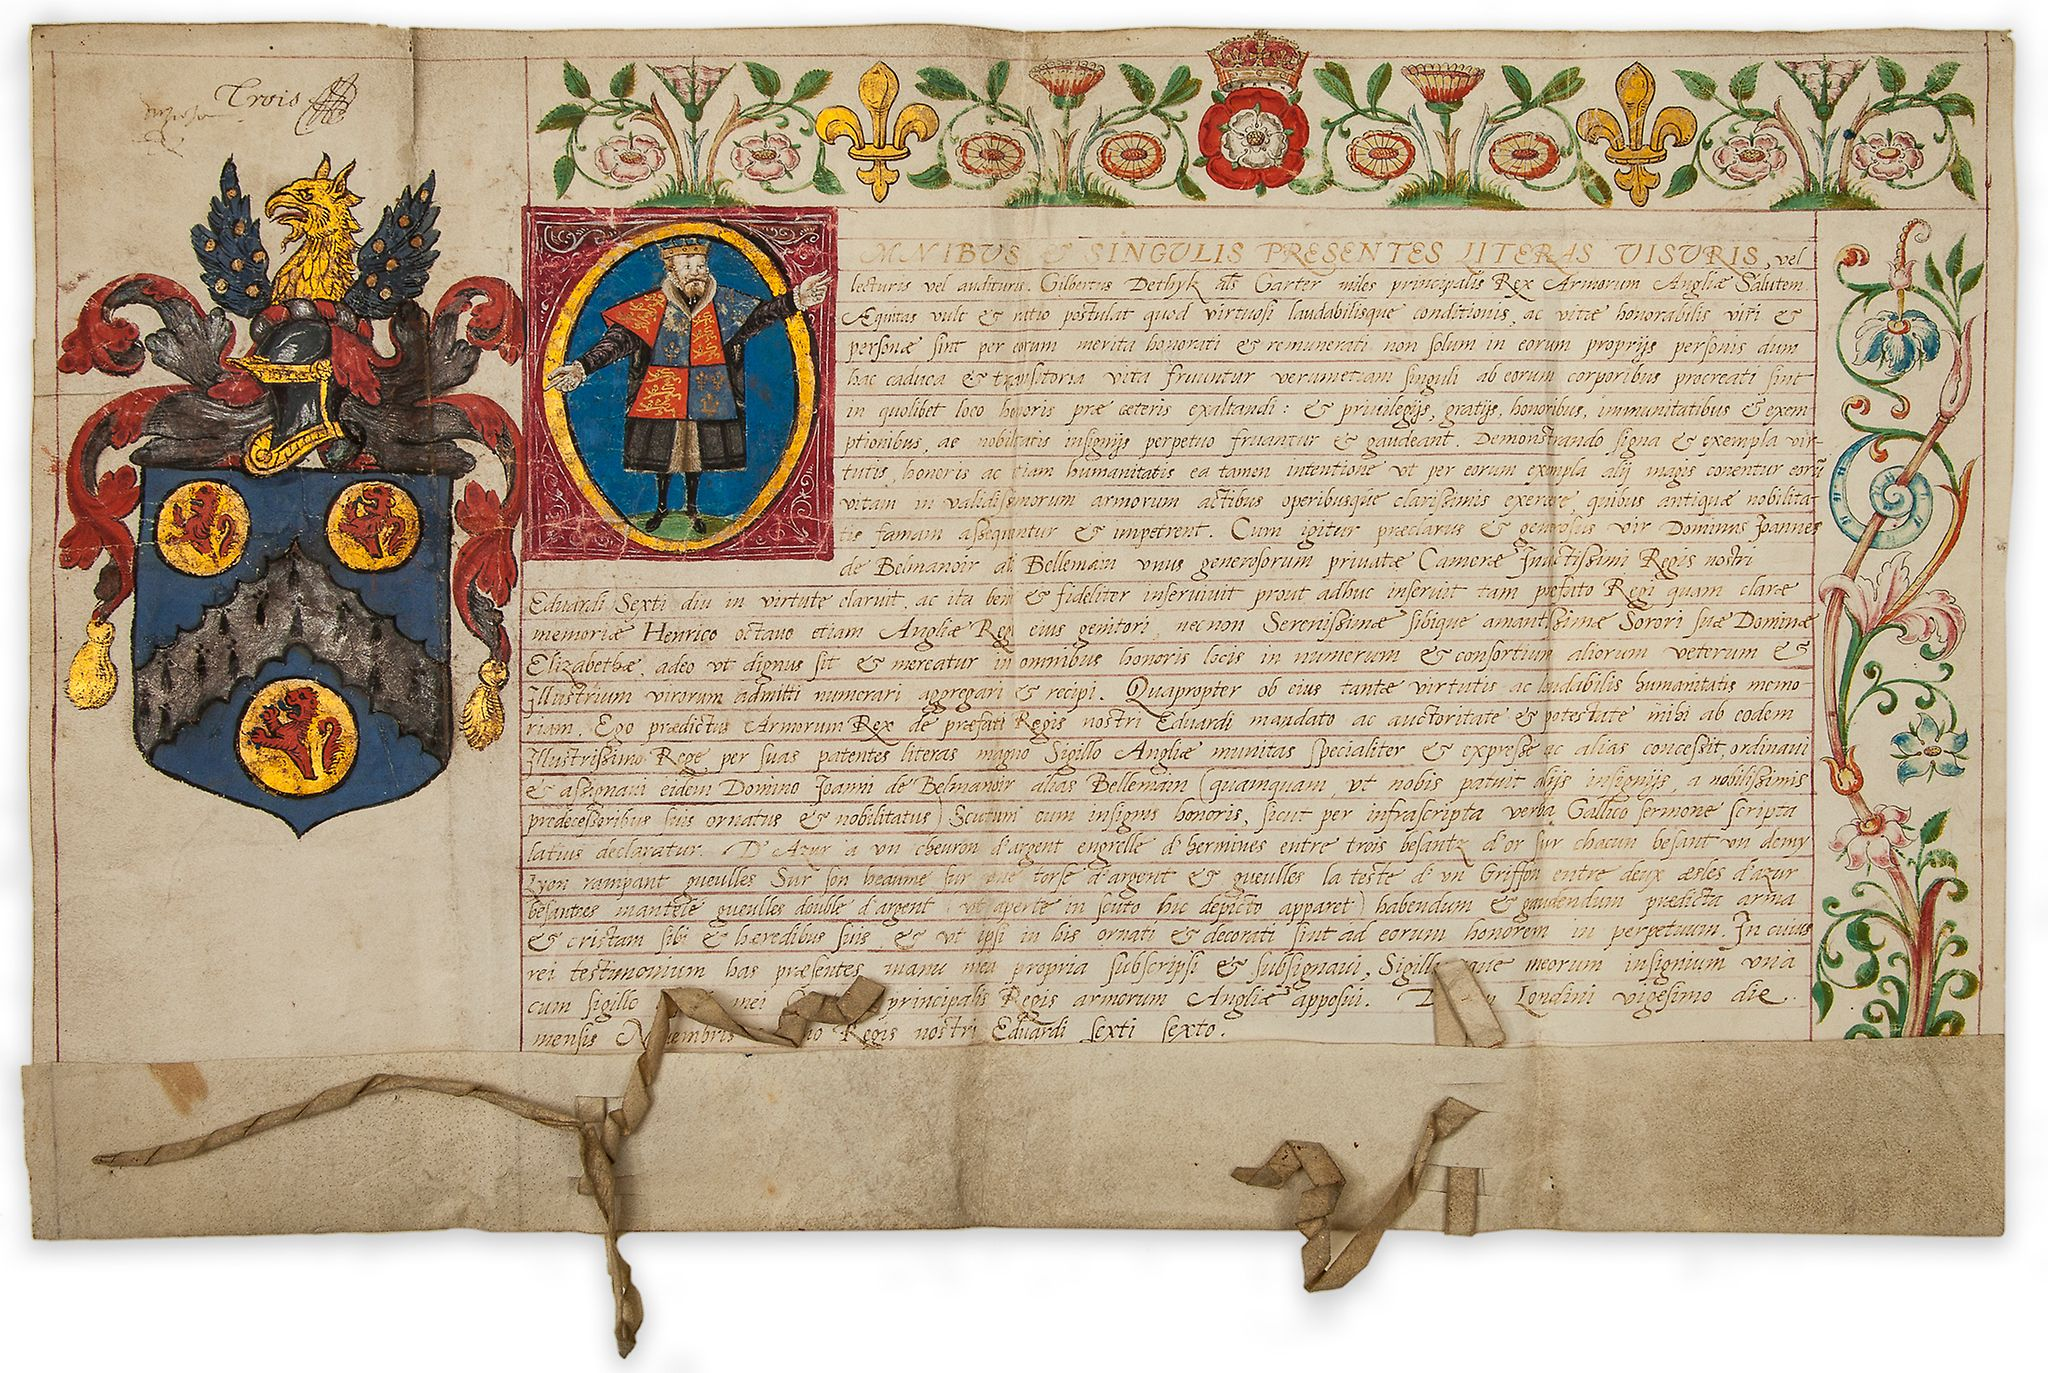 Lot 34 - Grant of Arms for Jean Belmain, - French tutor to King Edward VI and Queen Elizabeth I  French tutor